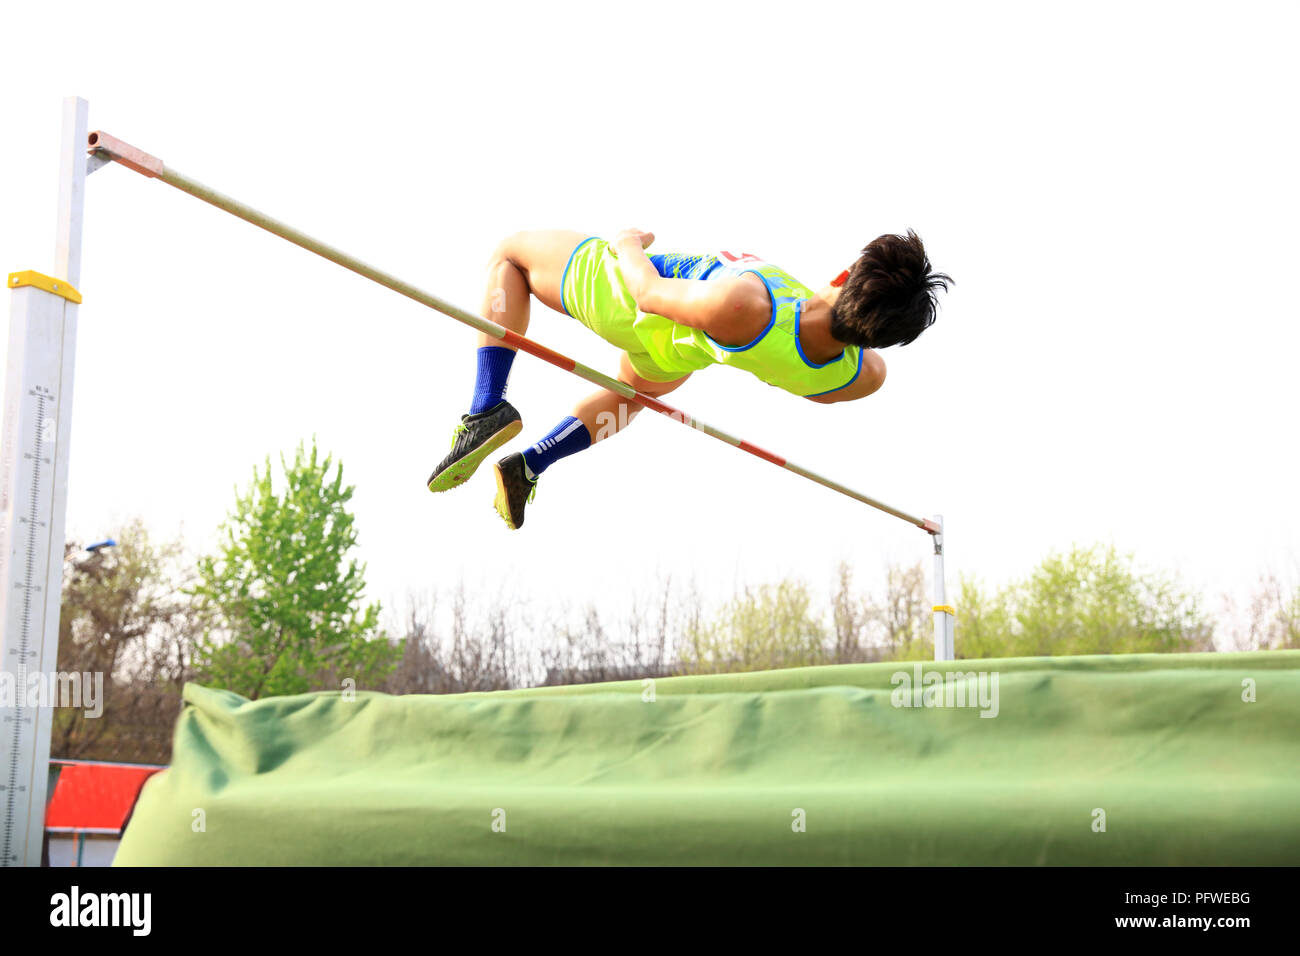 A male athlete is on the high jump - Stock Image